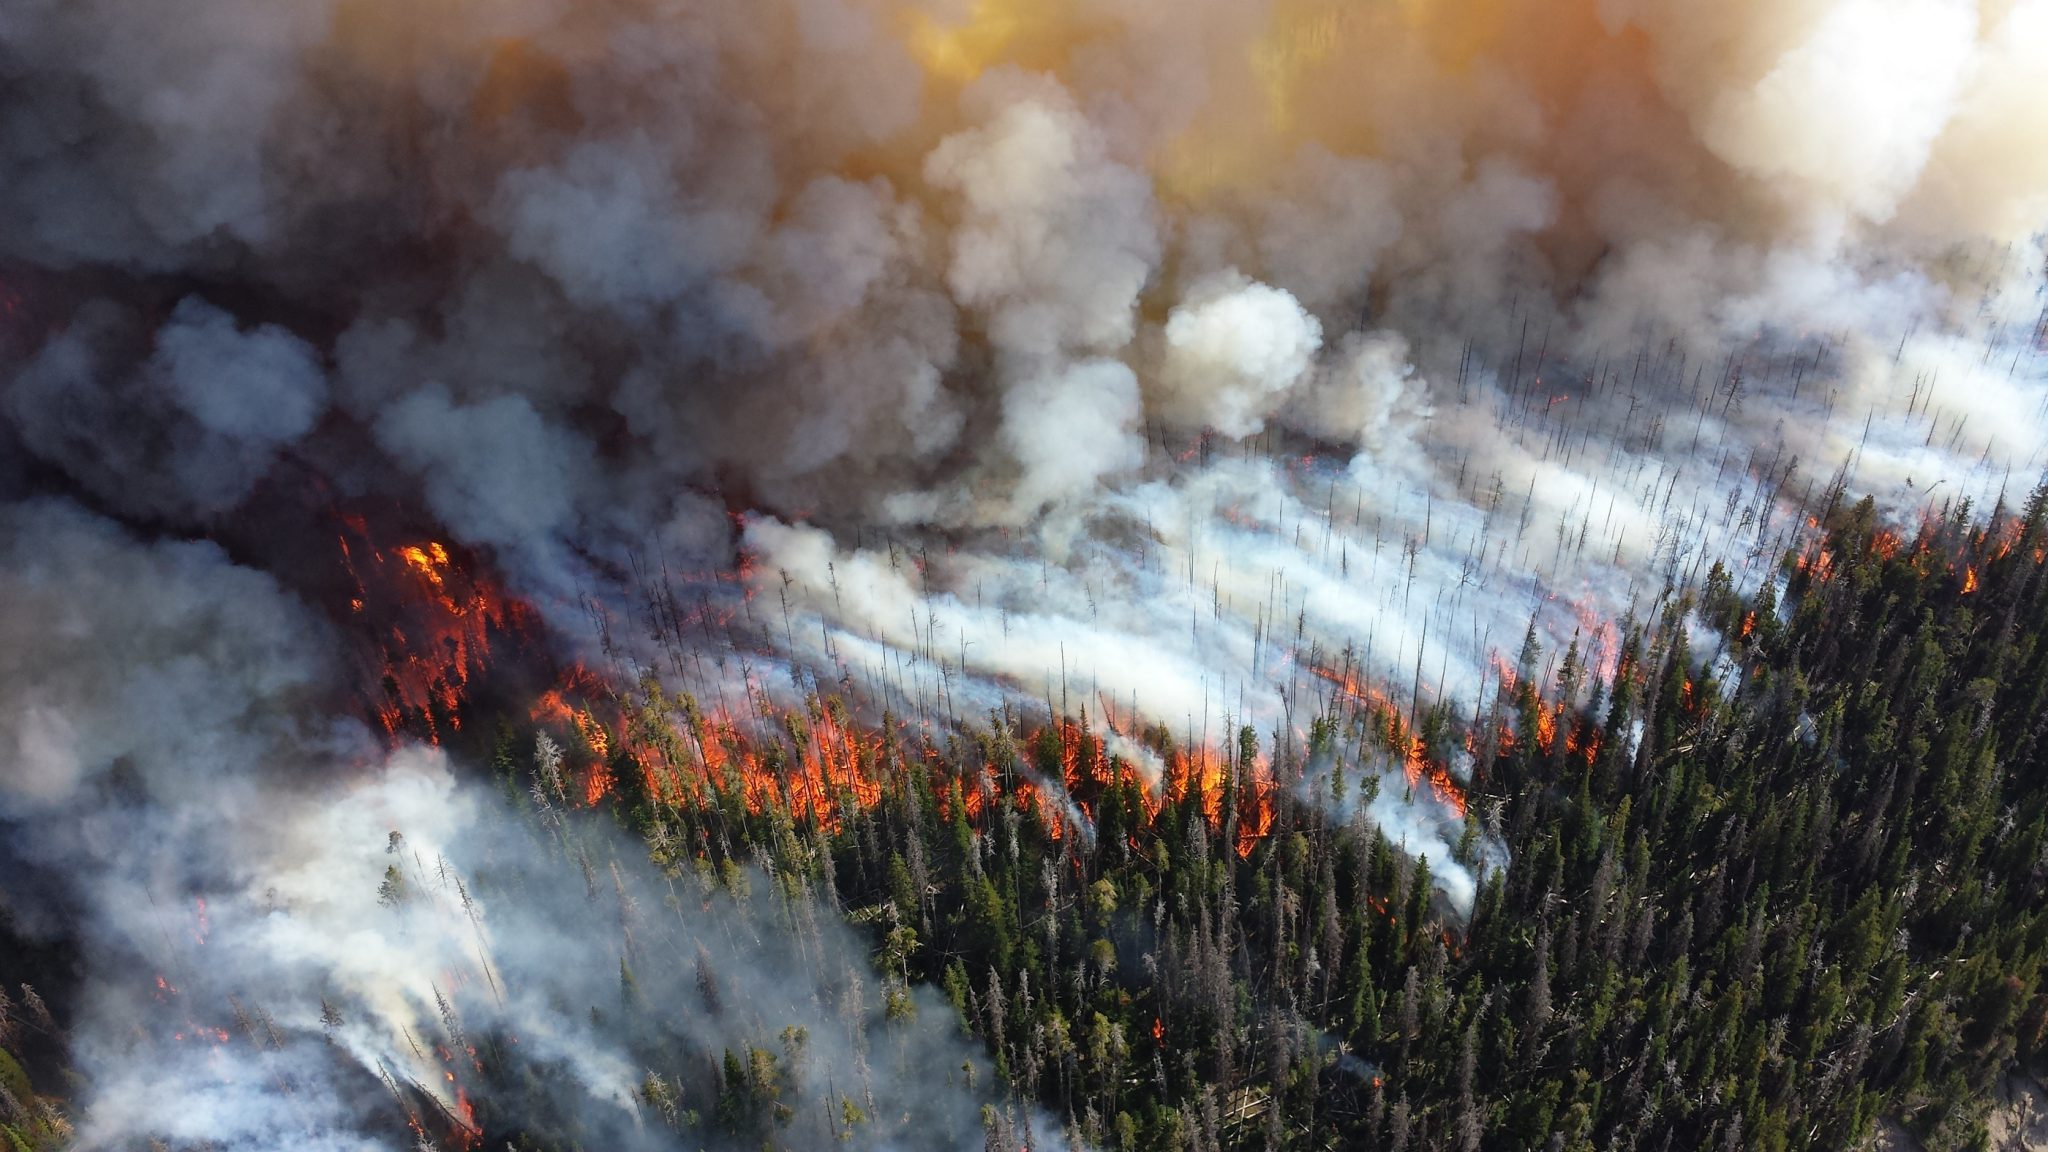 Smoke spreads from an ongoing wildland fire.